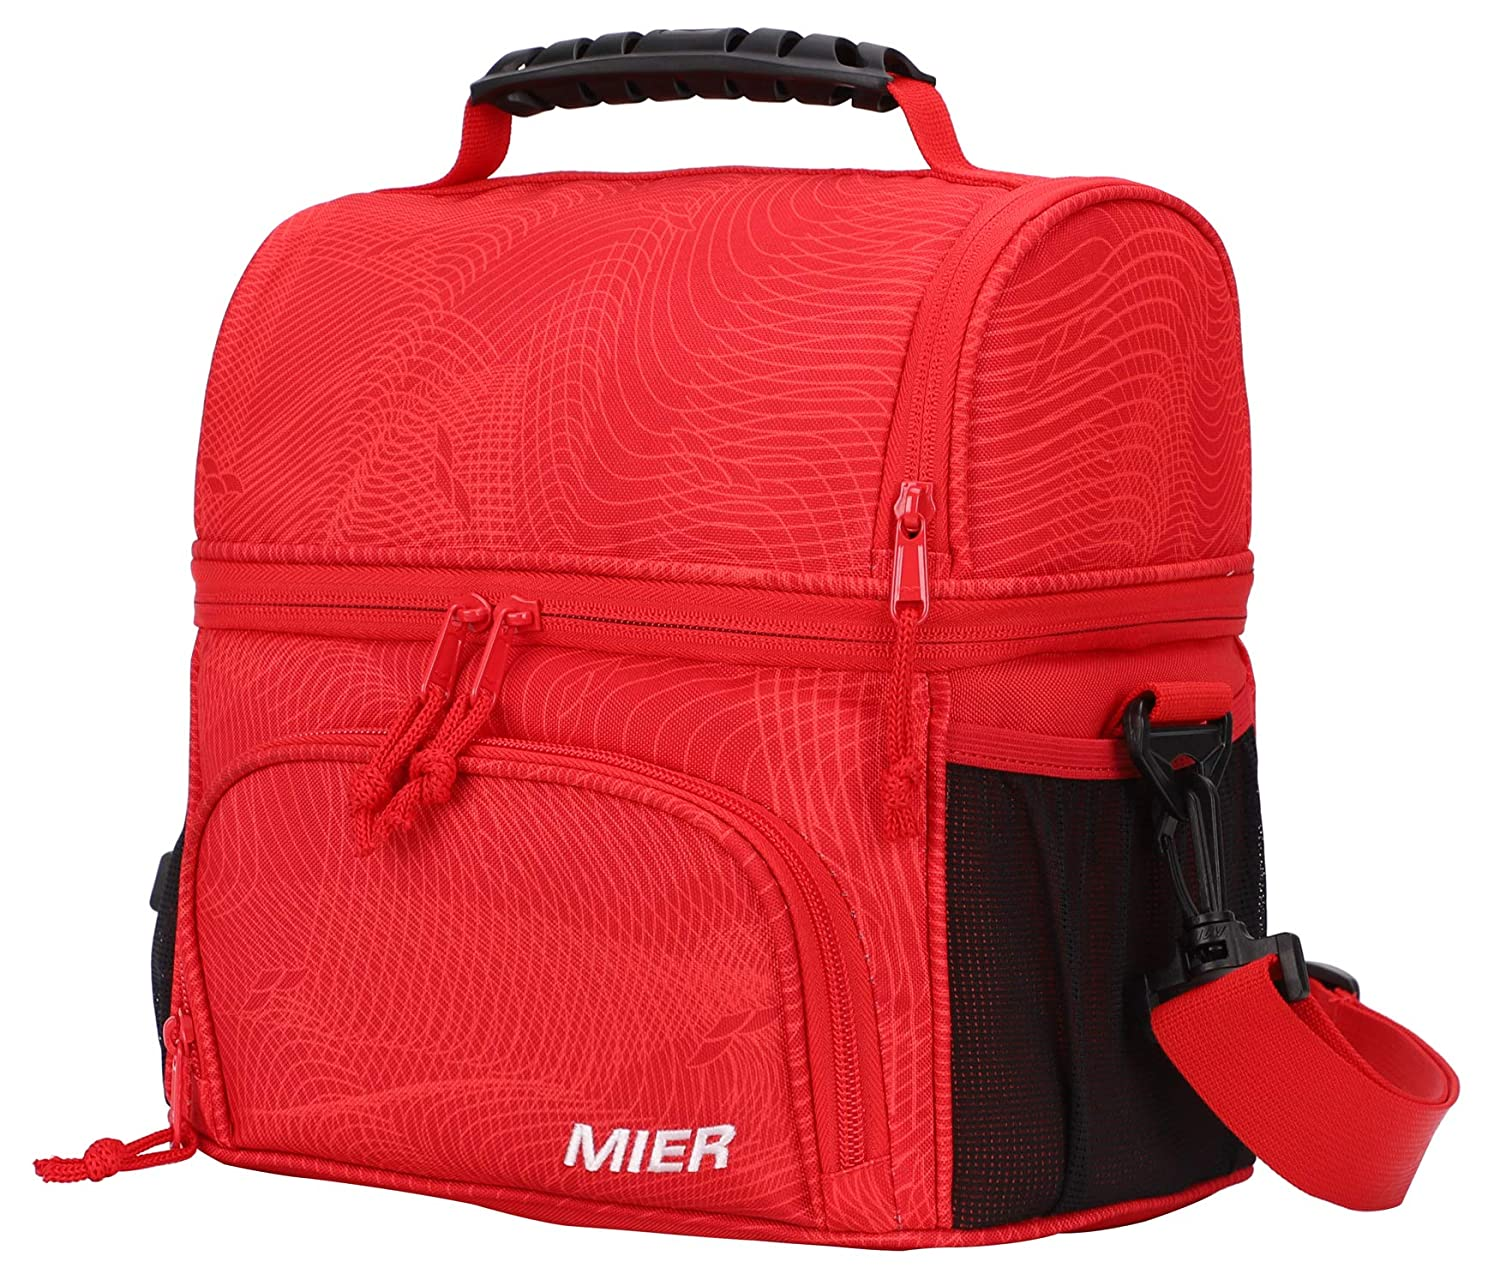 MIER Insulated Lunch Bag Tote for Women Men Kids 2 Compartment Reusable Soft Cooler Bag for Work, School, Medium, Black